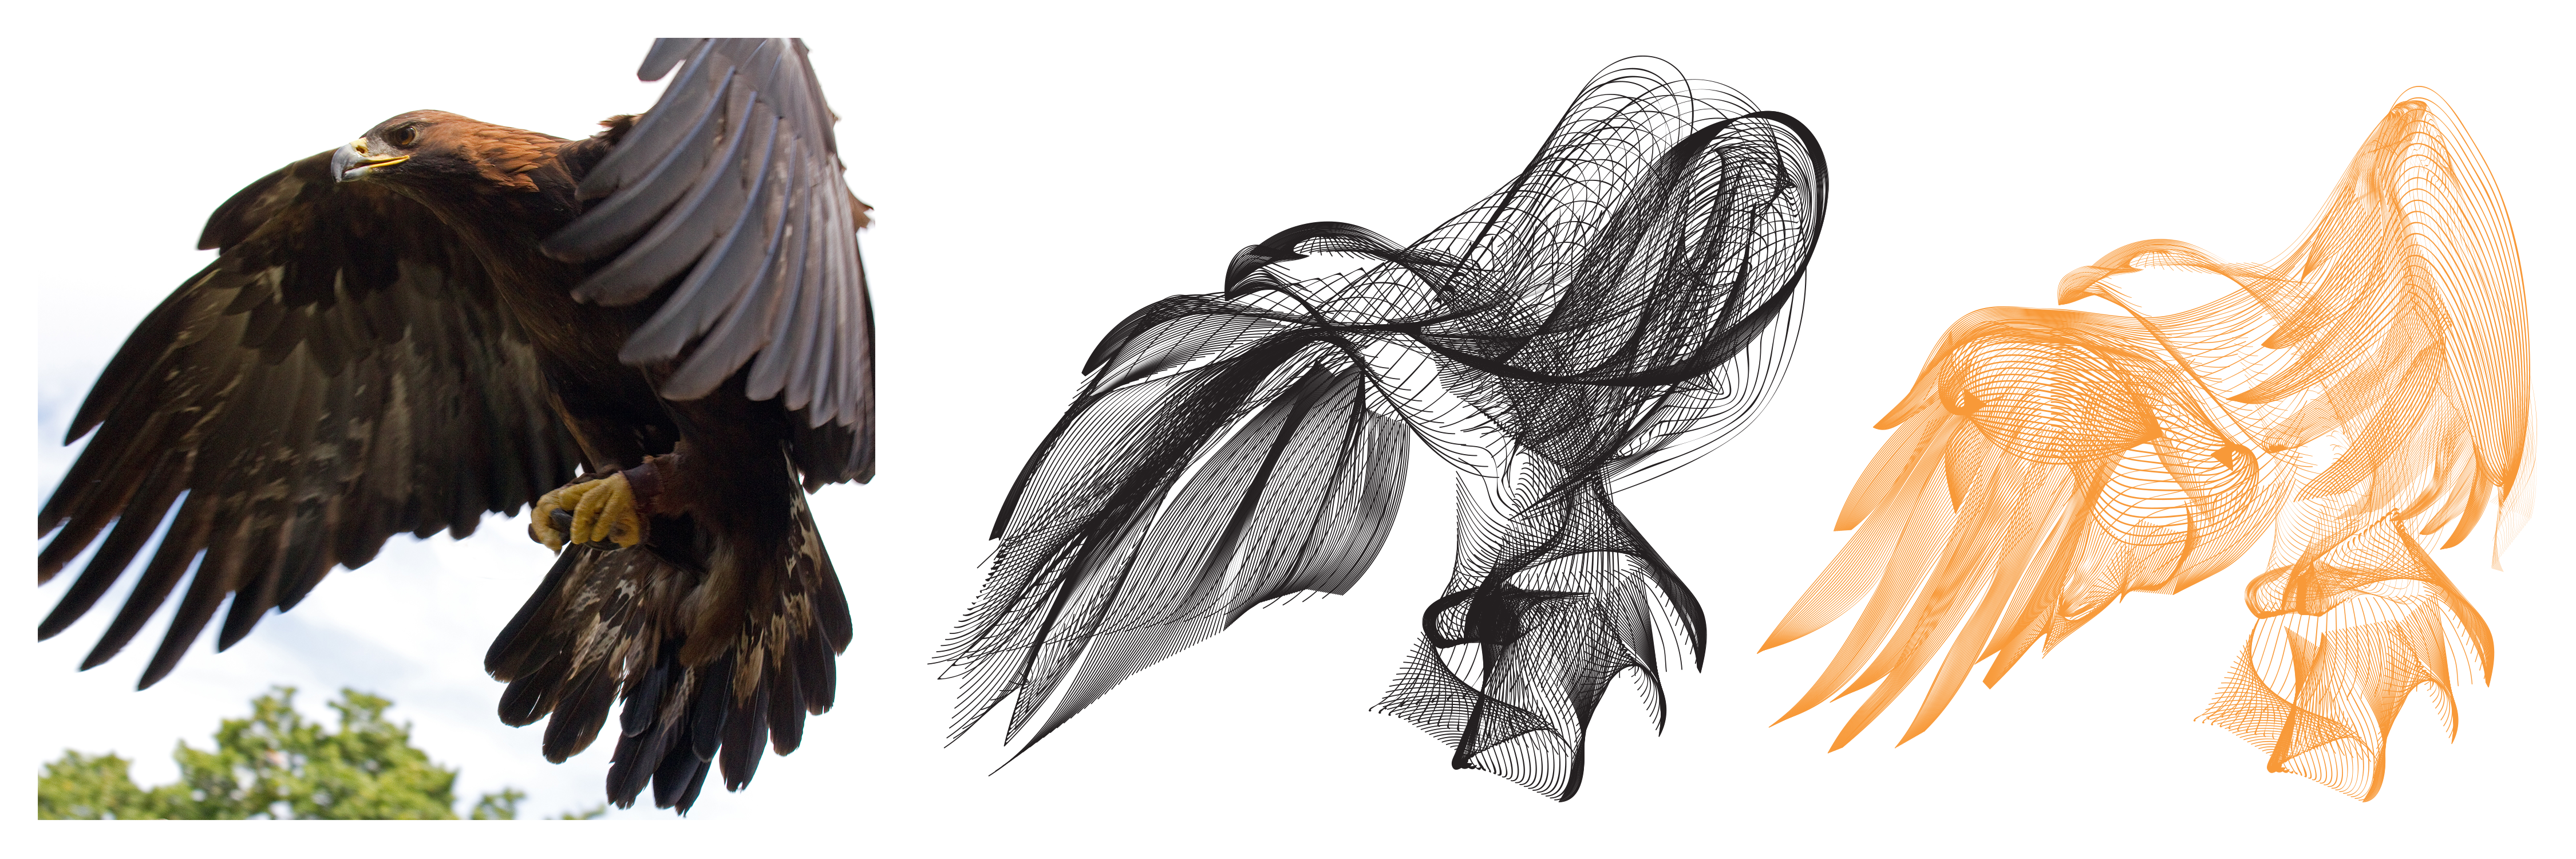 From left to right: original eagle image that was traced, first attempt at the blend tool (apparently this looked like a fish), and final version of the bird for print.